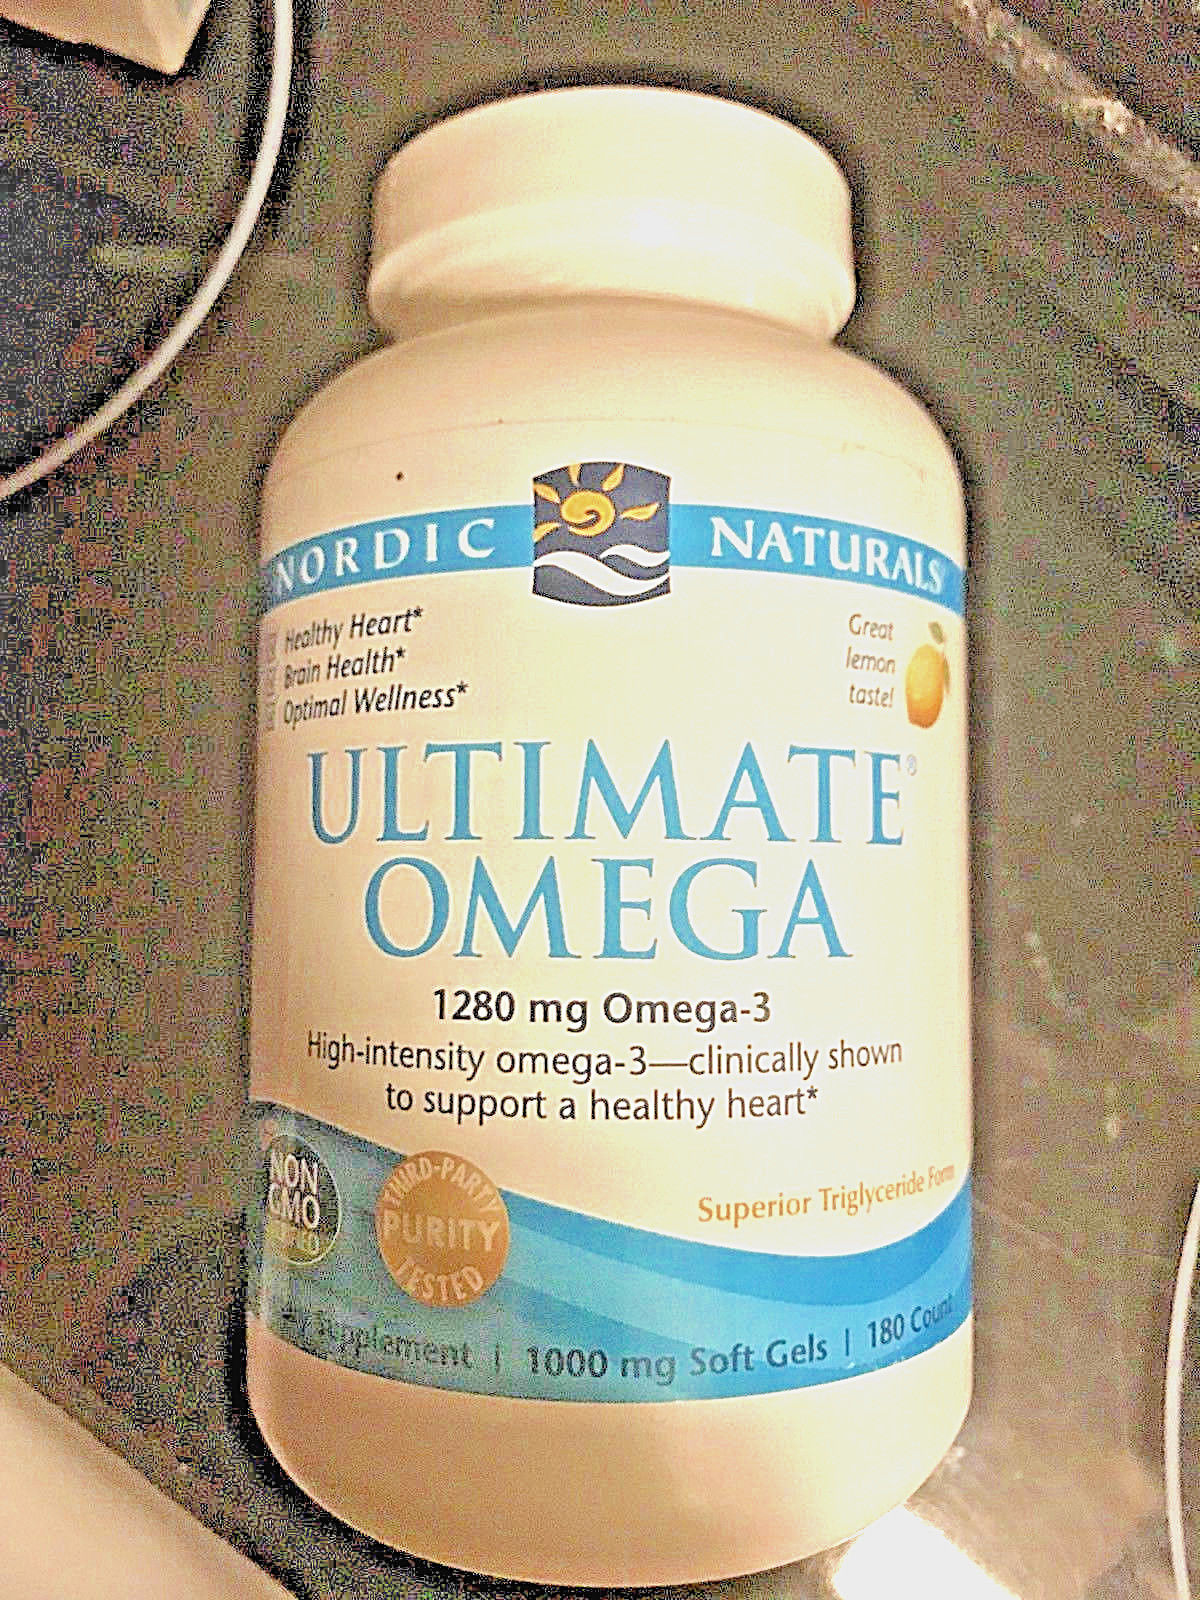 Nordic Naturals ULTIMATE OMEGA 180 softgels  NEW  Heart Health